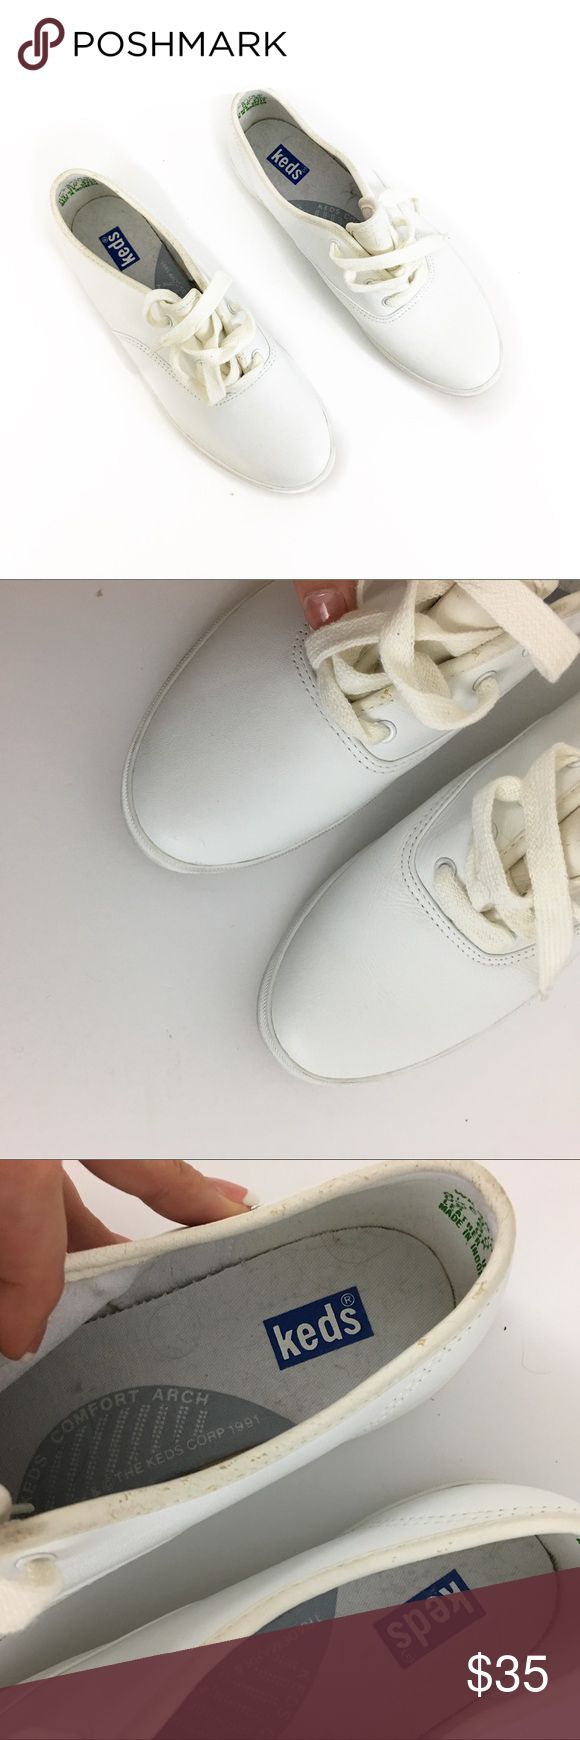 All white leather keds All white leather keds some wear to leather edging (pic 8)  Size 8.5 USA new without tags- never worn. No box.  🌹no trades 🌹discounts on bundles of 2+  🌹1000 items listed, take a peak!  🌹suggested user, posh compliant:)   bbbg Keds Shoes Sneakers